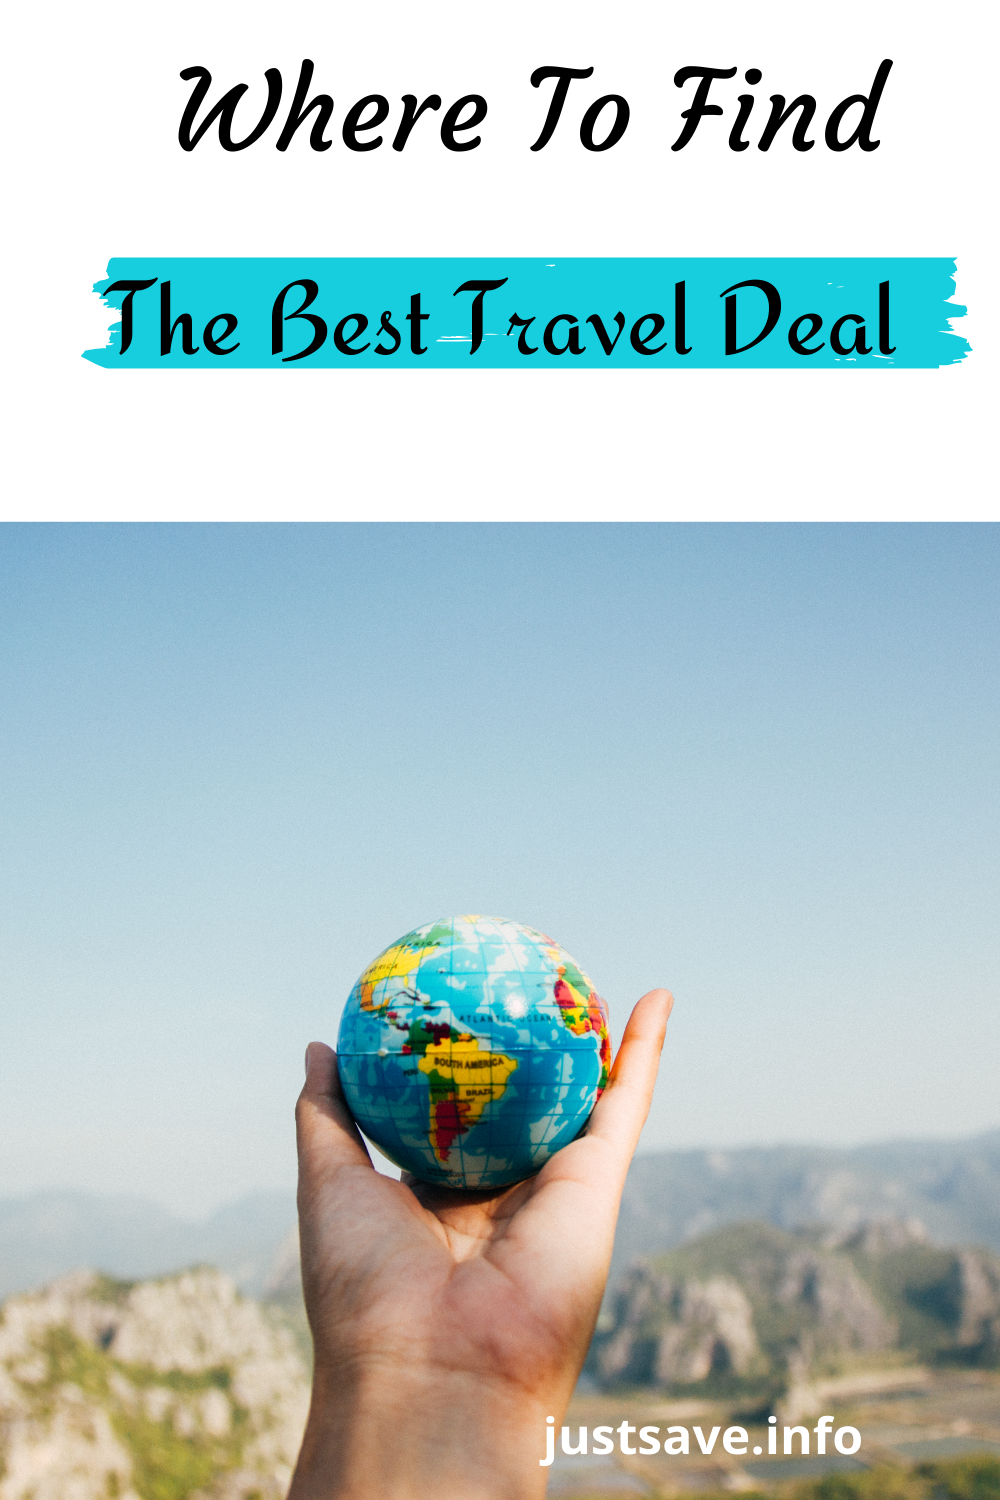 Where To Find The Best Travel Deal #besttraveldeal #traveldeal